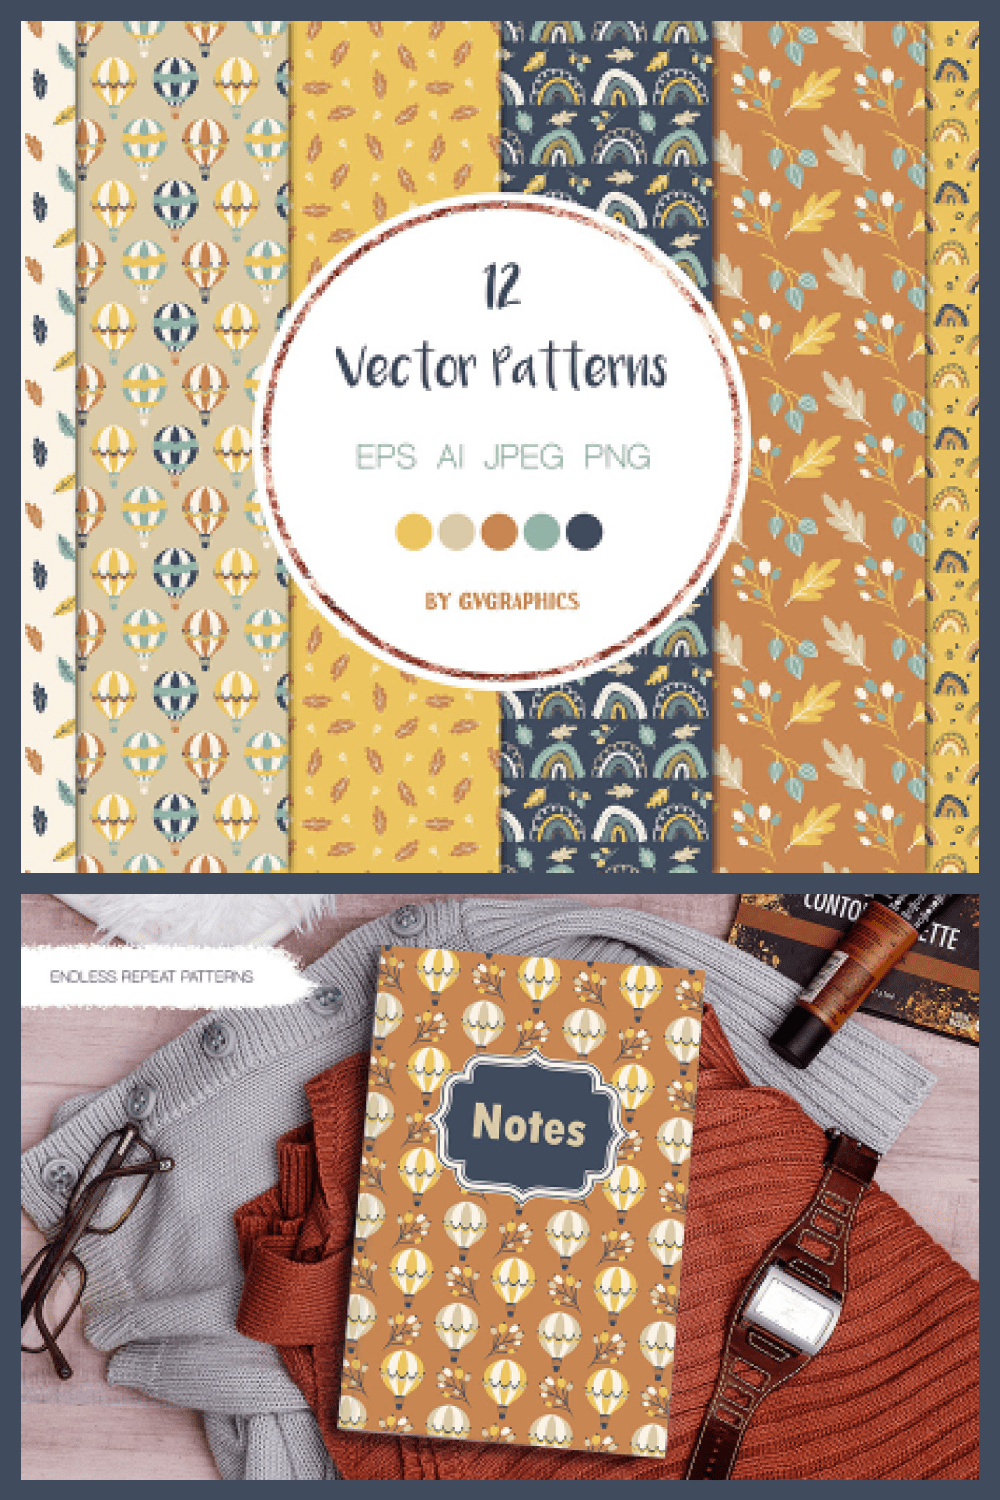 Autumn Air Baloons, Rainbows and Leaves Vector Patterns and Seamless Tiles - MasterBundles - Pinterest Collage Image.